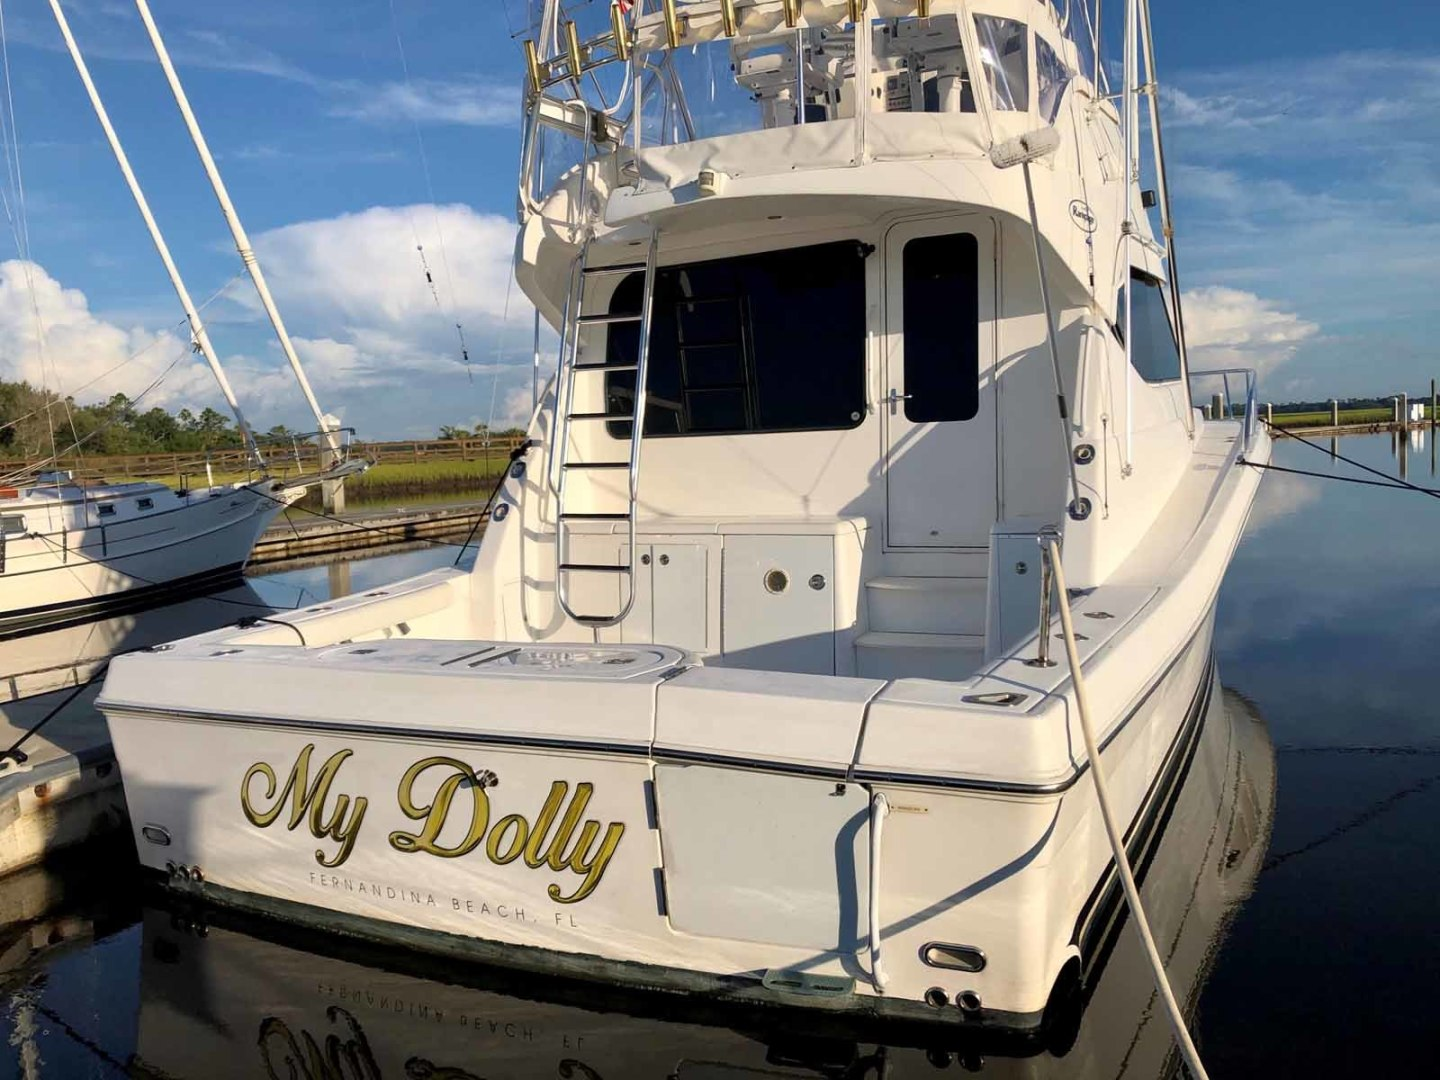 Rampage-45 SF 2004-MY DOLLY Ft. Lauderdale-Florida-United States-Transom-1464043 | Thumbnail